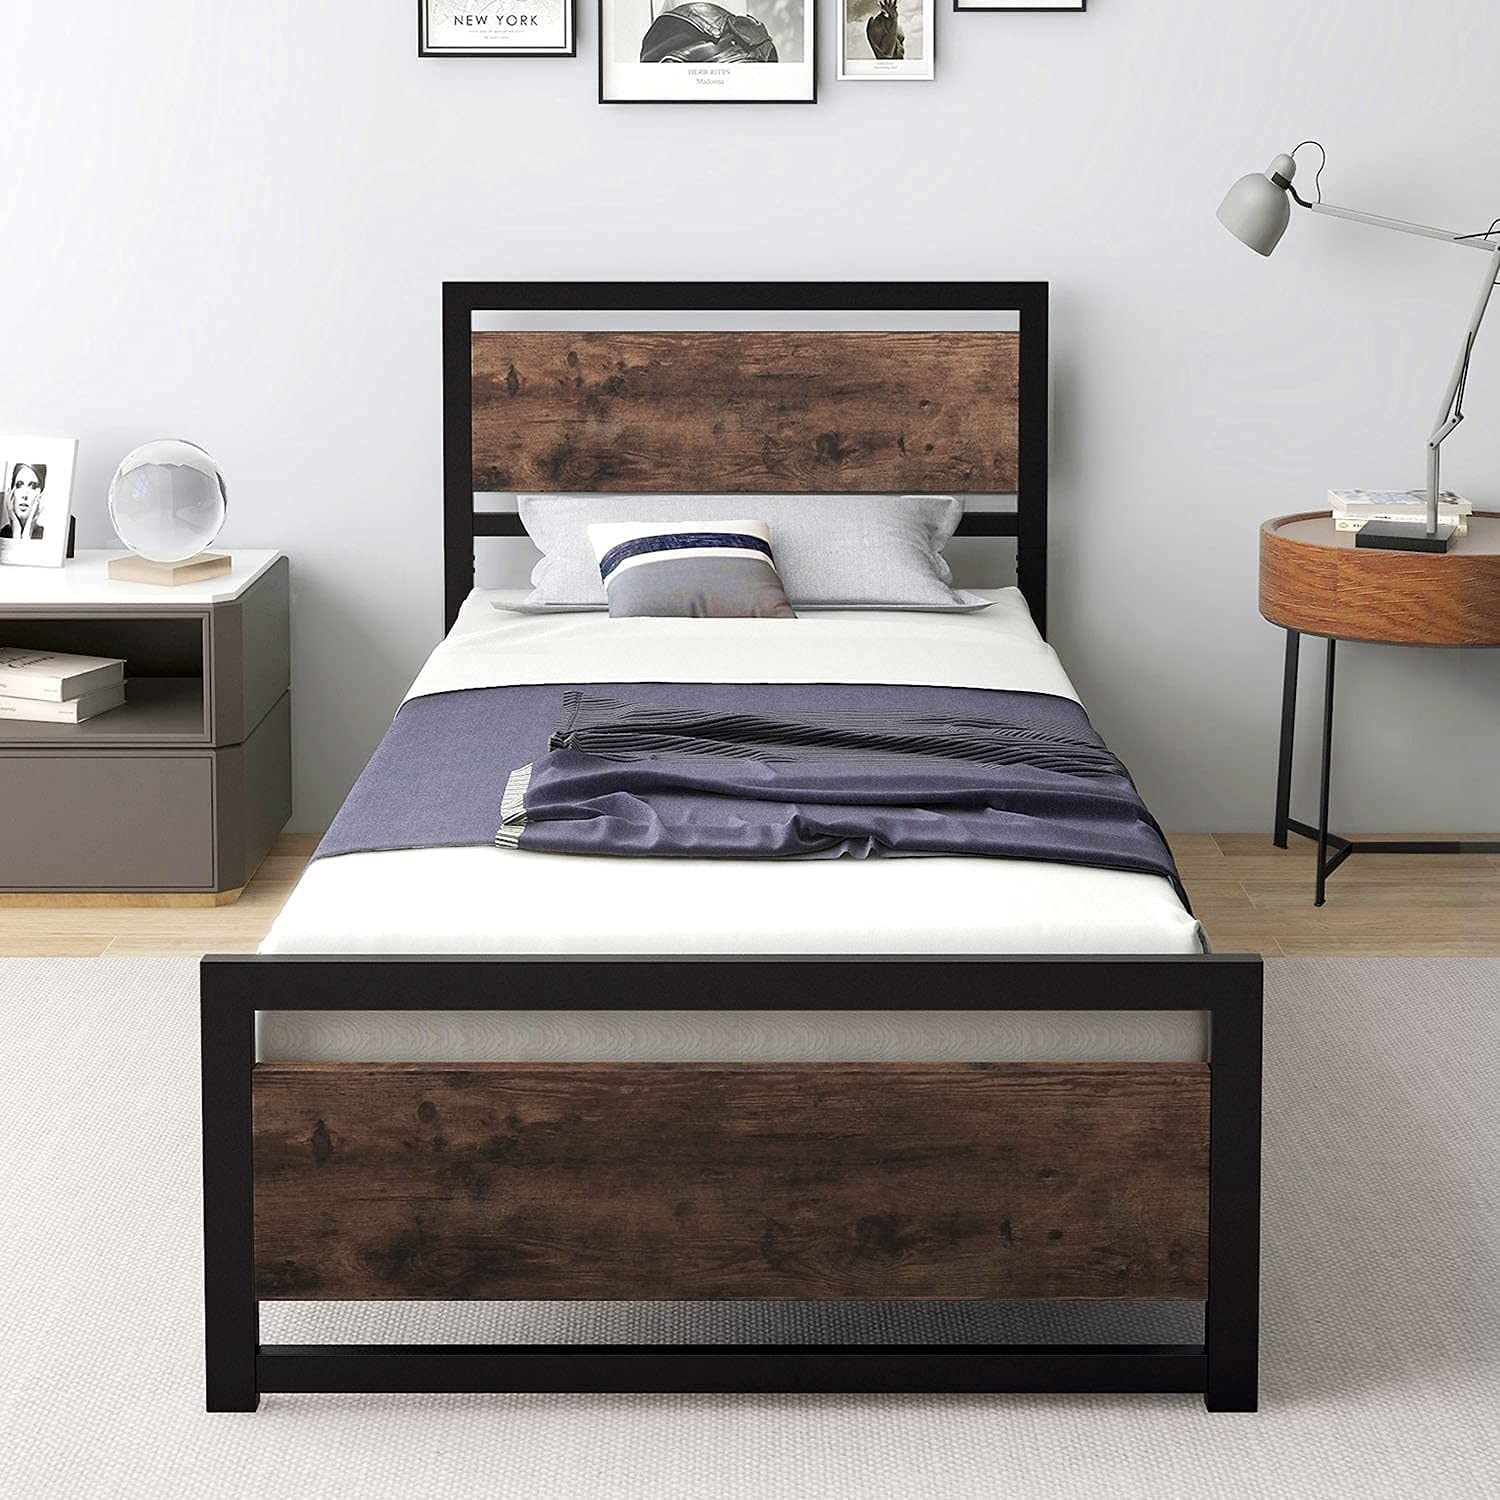 Bed Frame with Wooden Headboard,No Box Spring Needed, Heavy Duty Metal Bed,Mattress Foundation,Strong Slat Support, Twin XL/Queen/King (Twin XL)